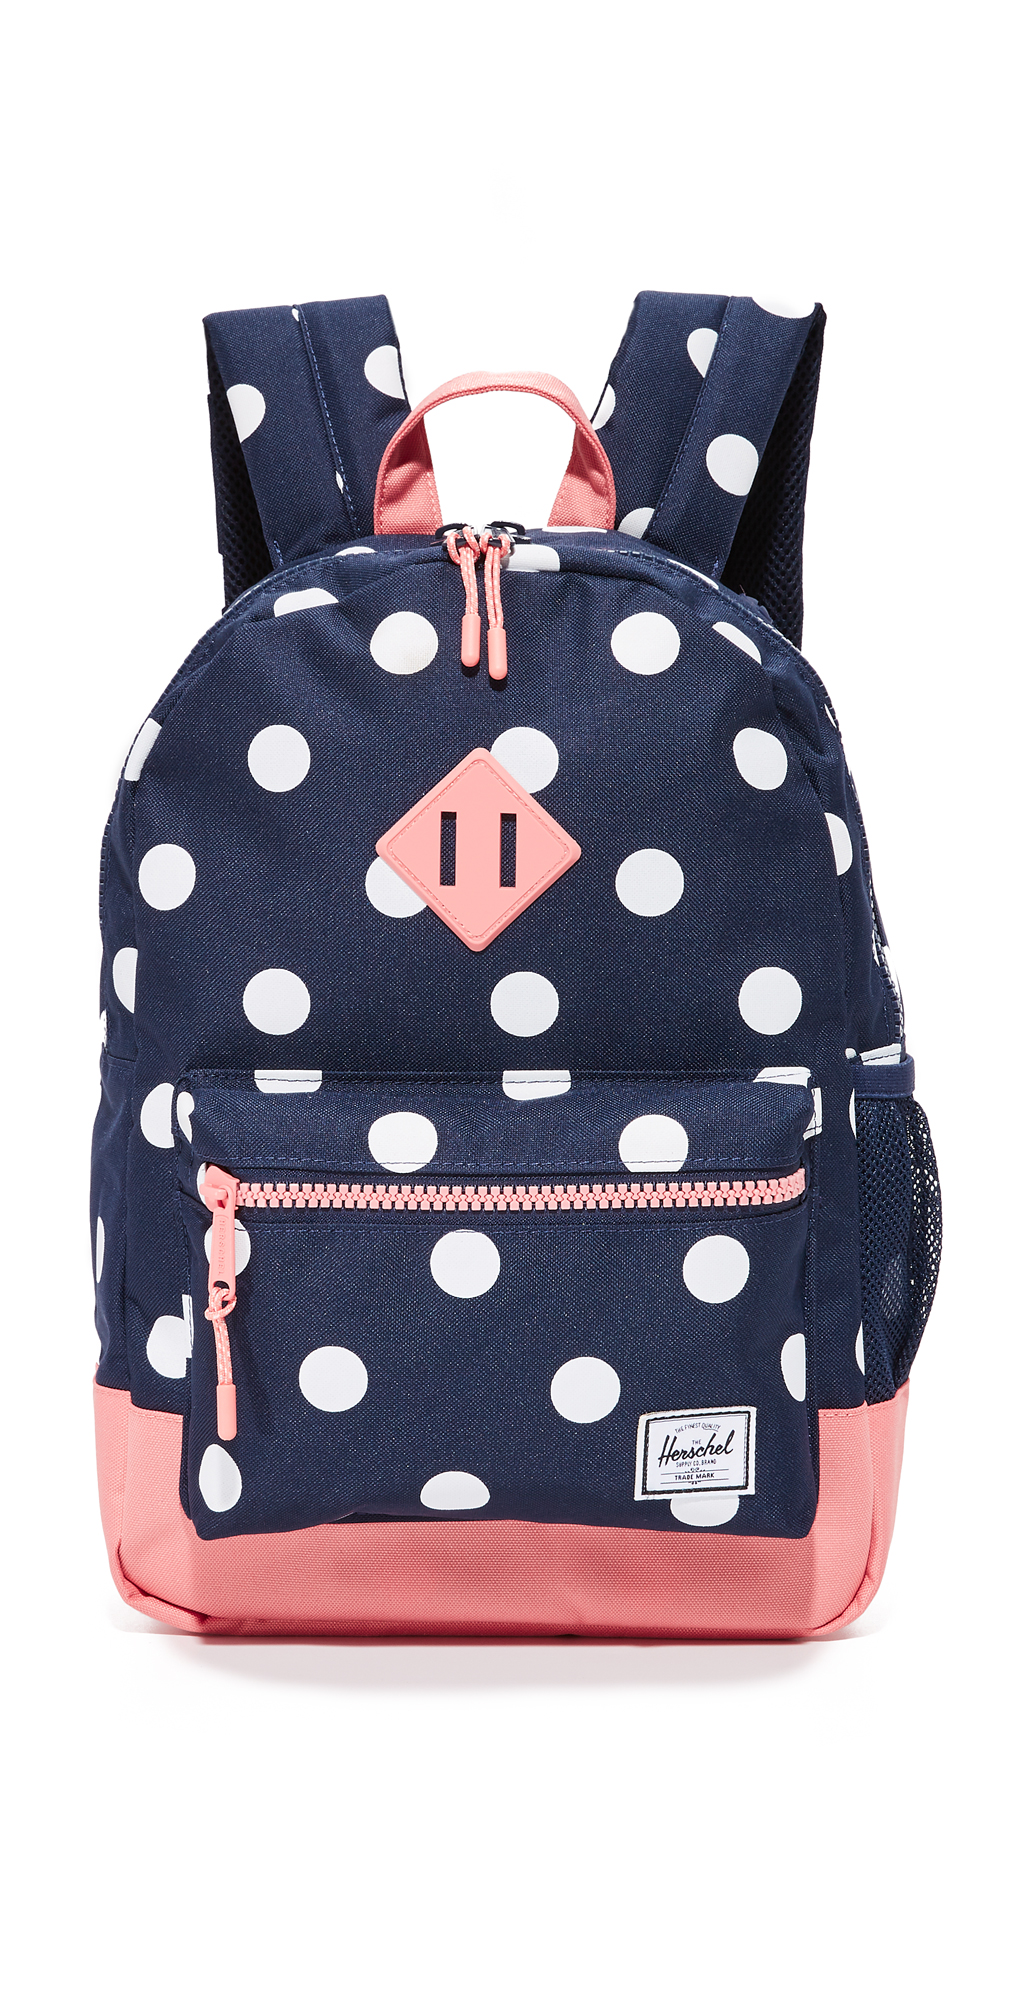 Heritage Youth Backpack Herschel Supply Co.